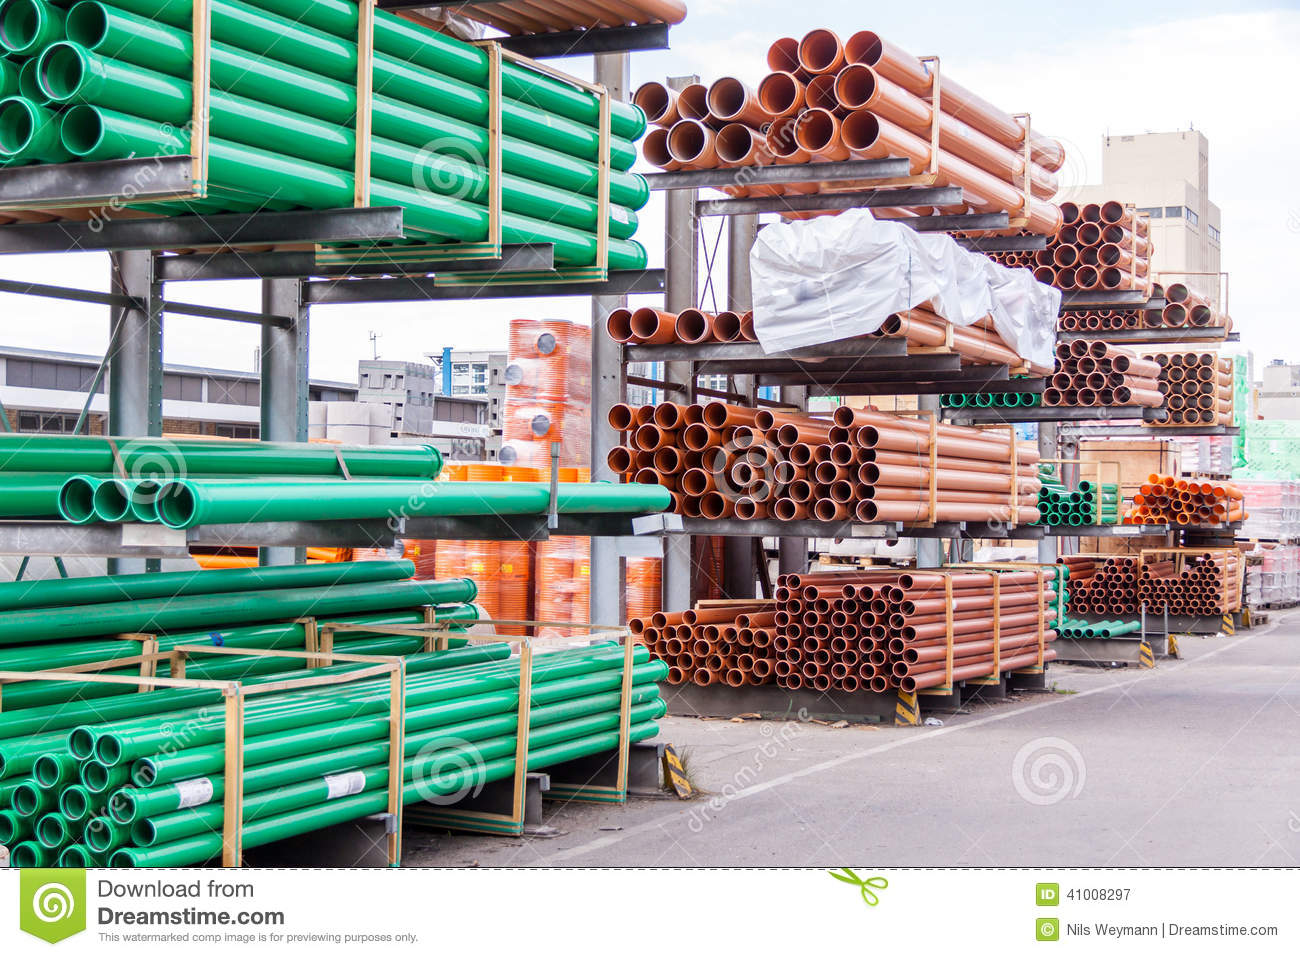 Warehouse Website Plastic Pipes In A Factory Or Warehouse Yard Stock Photo